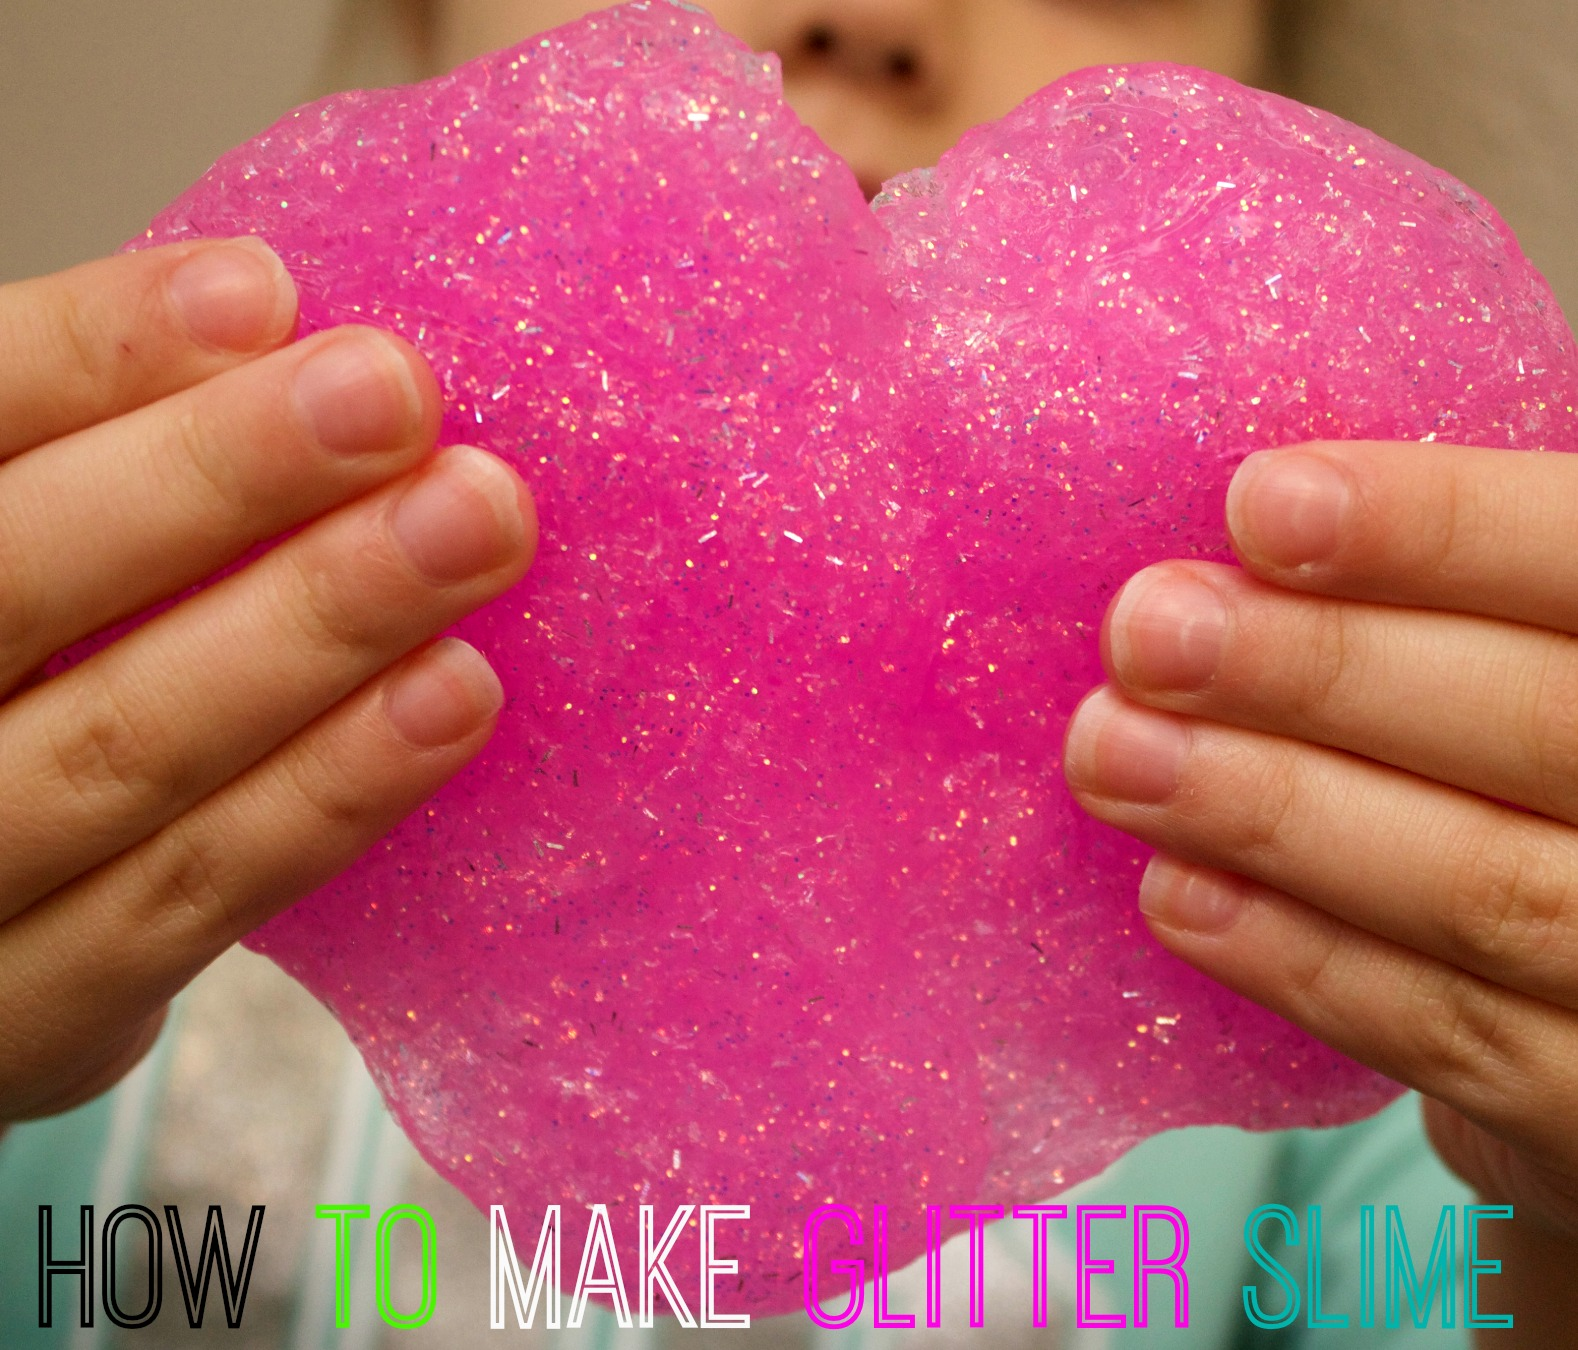 Glitter slime recipe with only 3 ingredients mom luck easy glitter slime recipe ccuart Gallery